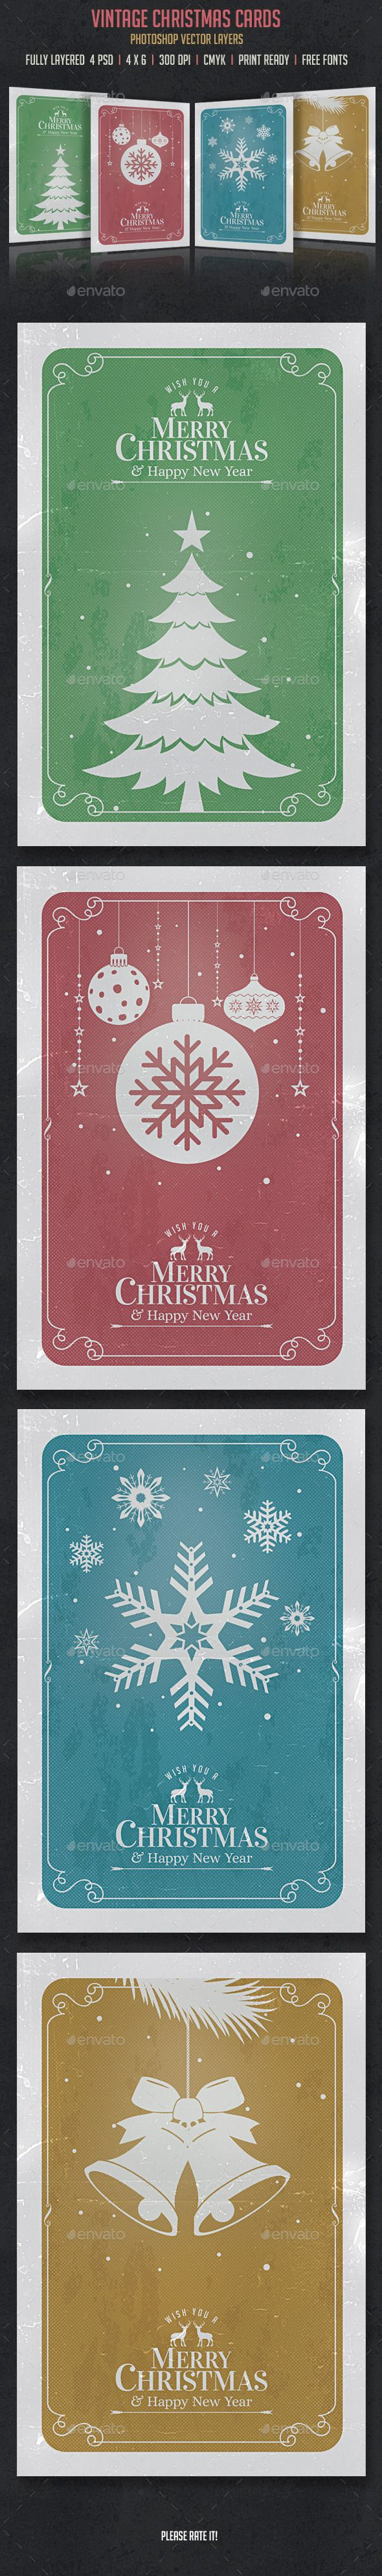 Vintage Christmas Cards/Invitation